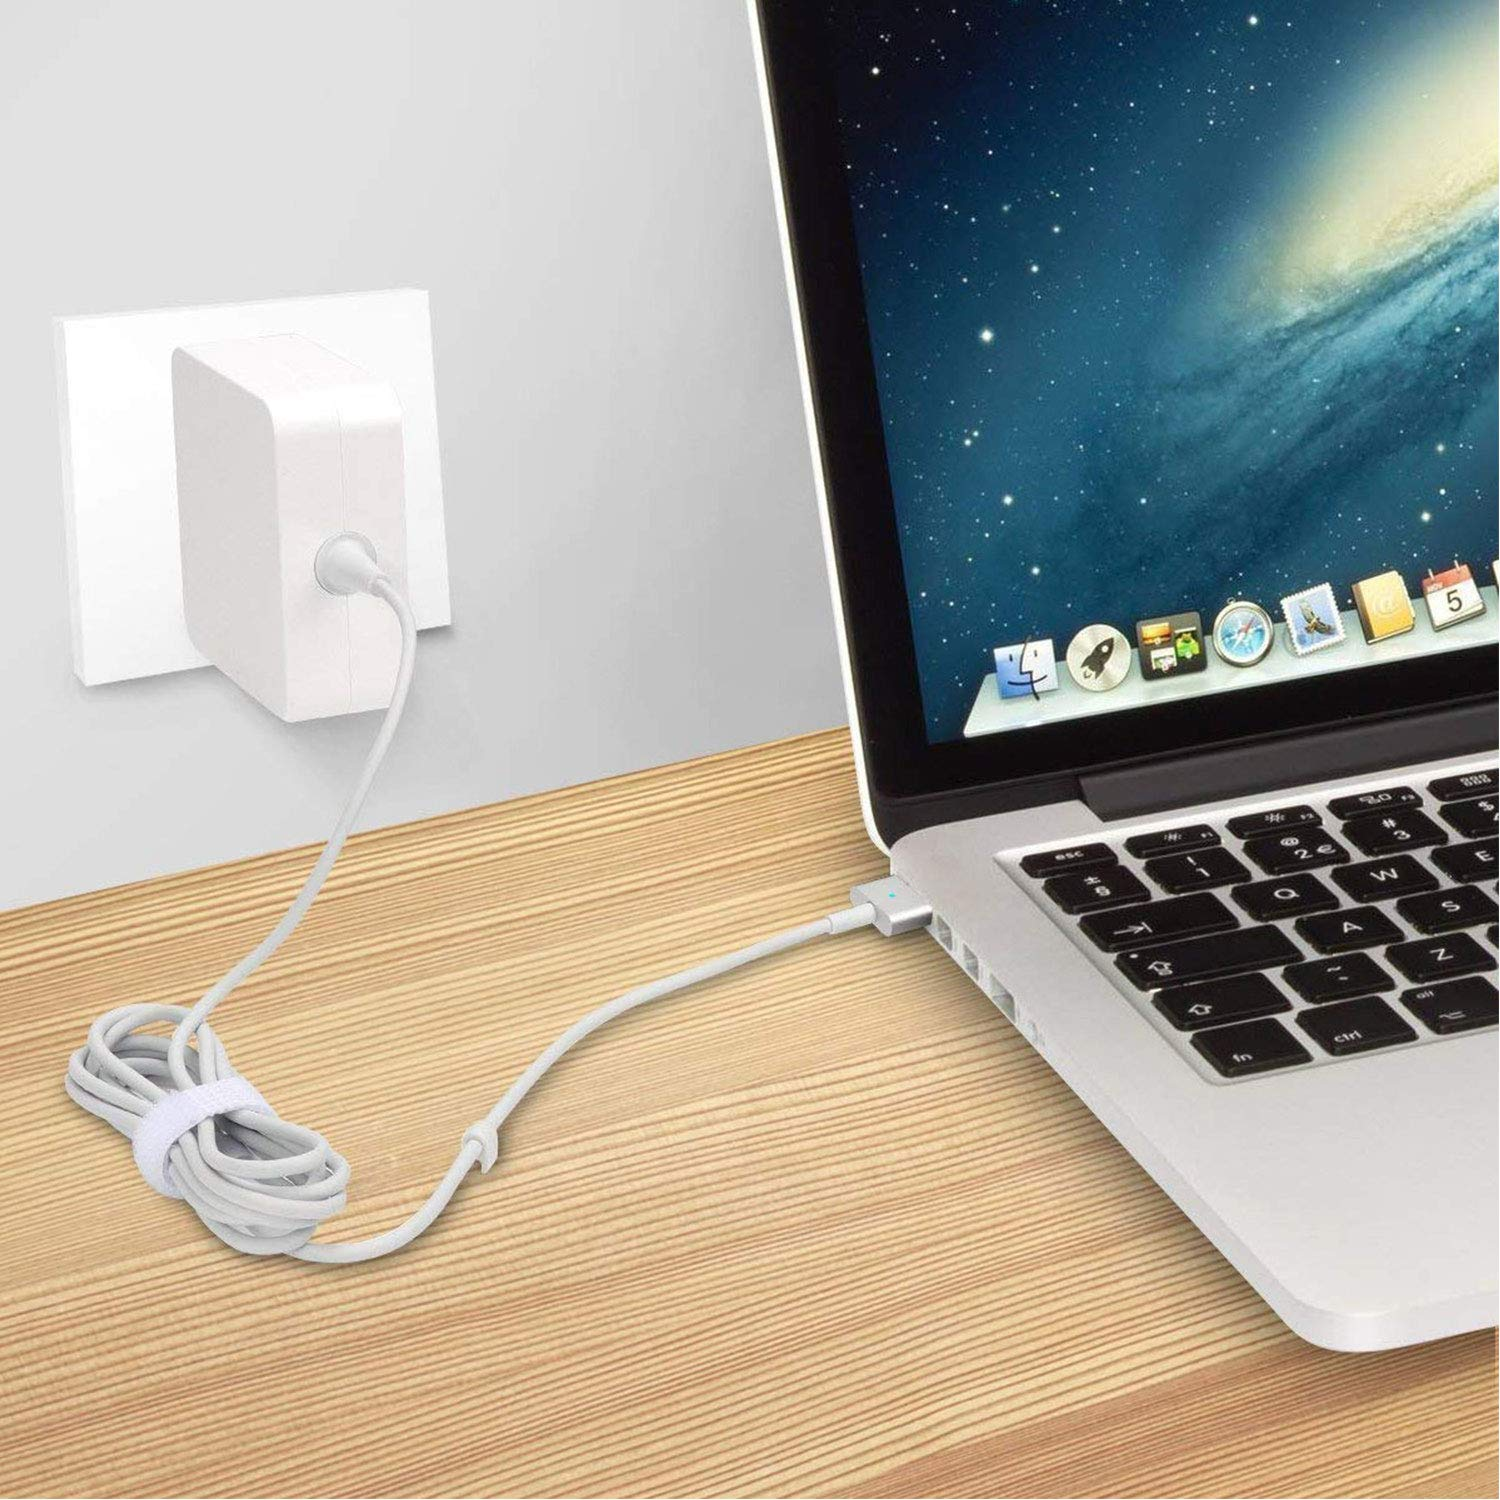 TrophyRak for MacBook Air Charger 45W MagSafe 2 T-Tip Adapter Charger for MacBook Air 11-inch and 13-inch After Mid 2012 by TrophyRak (Image #8)